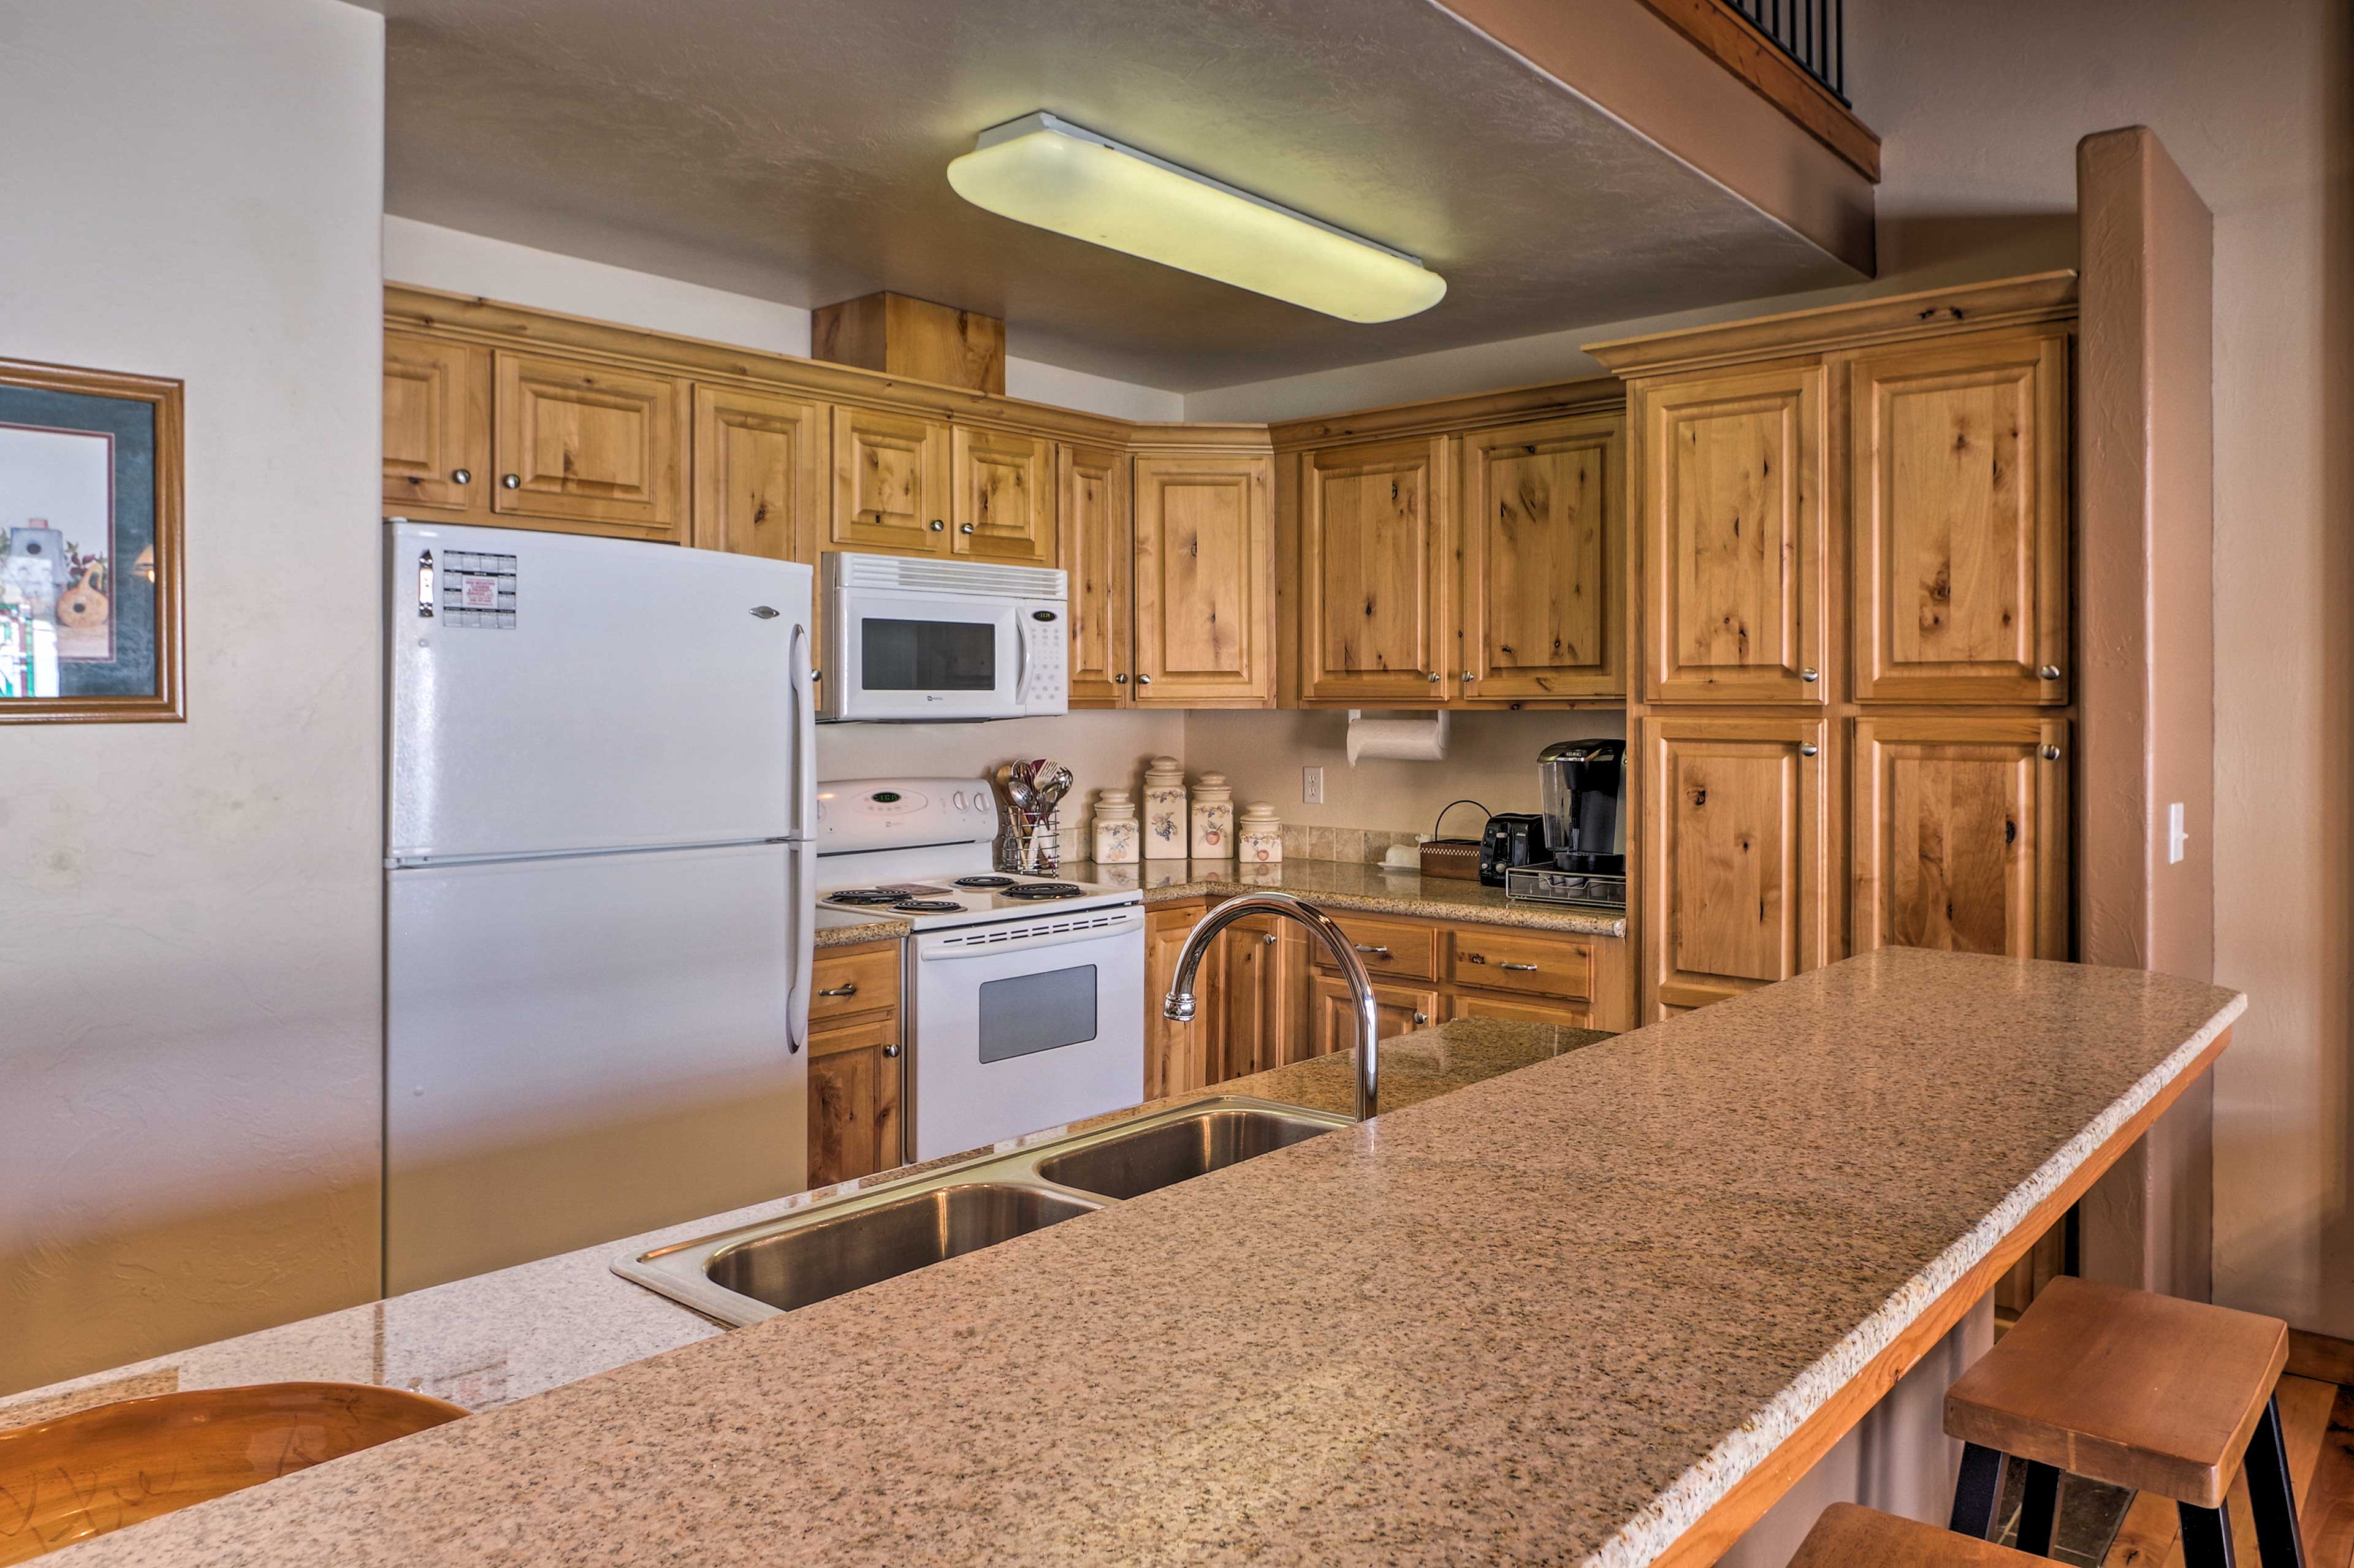 This spacious kitchen boasts granite countertops and modern appliances.